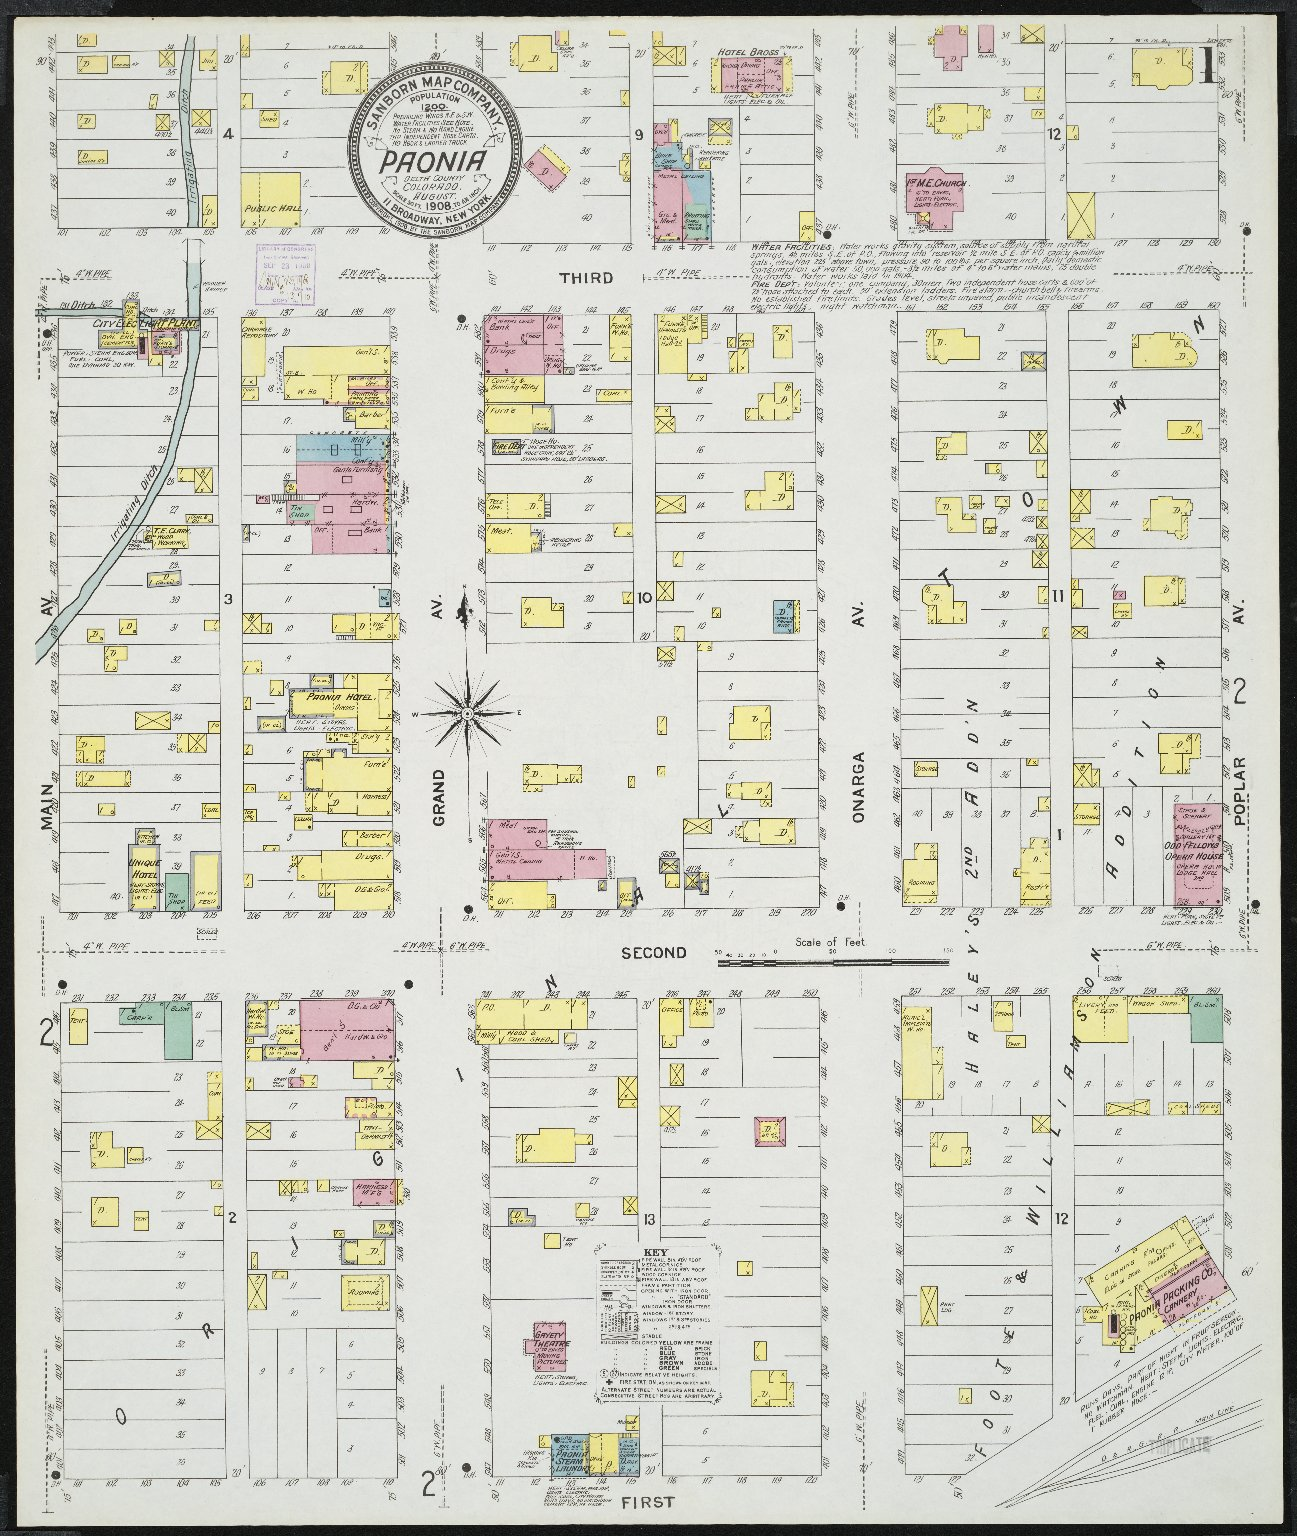 Delta County Colorado Map.Paonia Delta County Colorado Sanborn Fire Insurance Map Collection